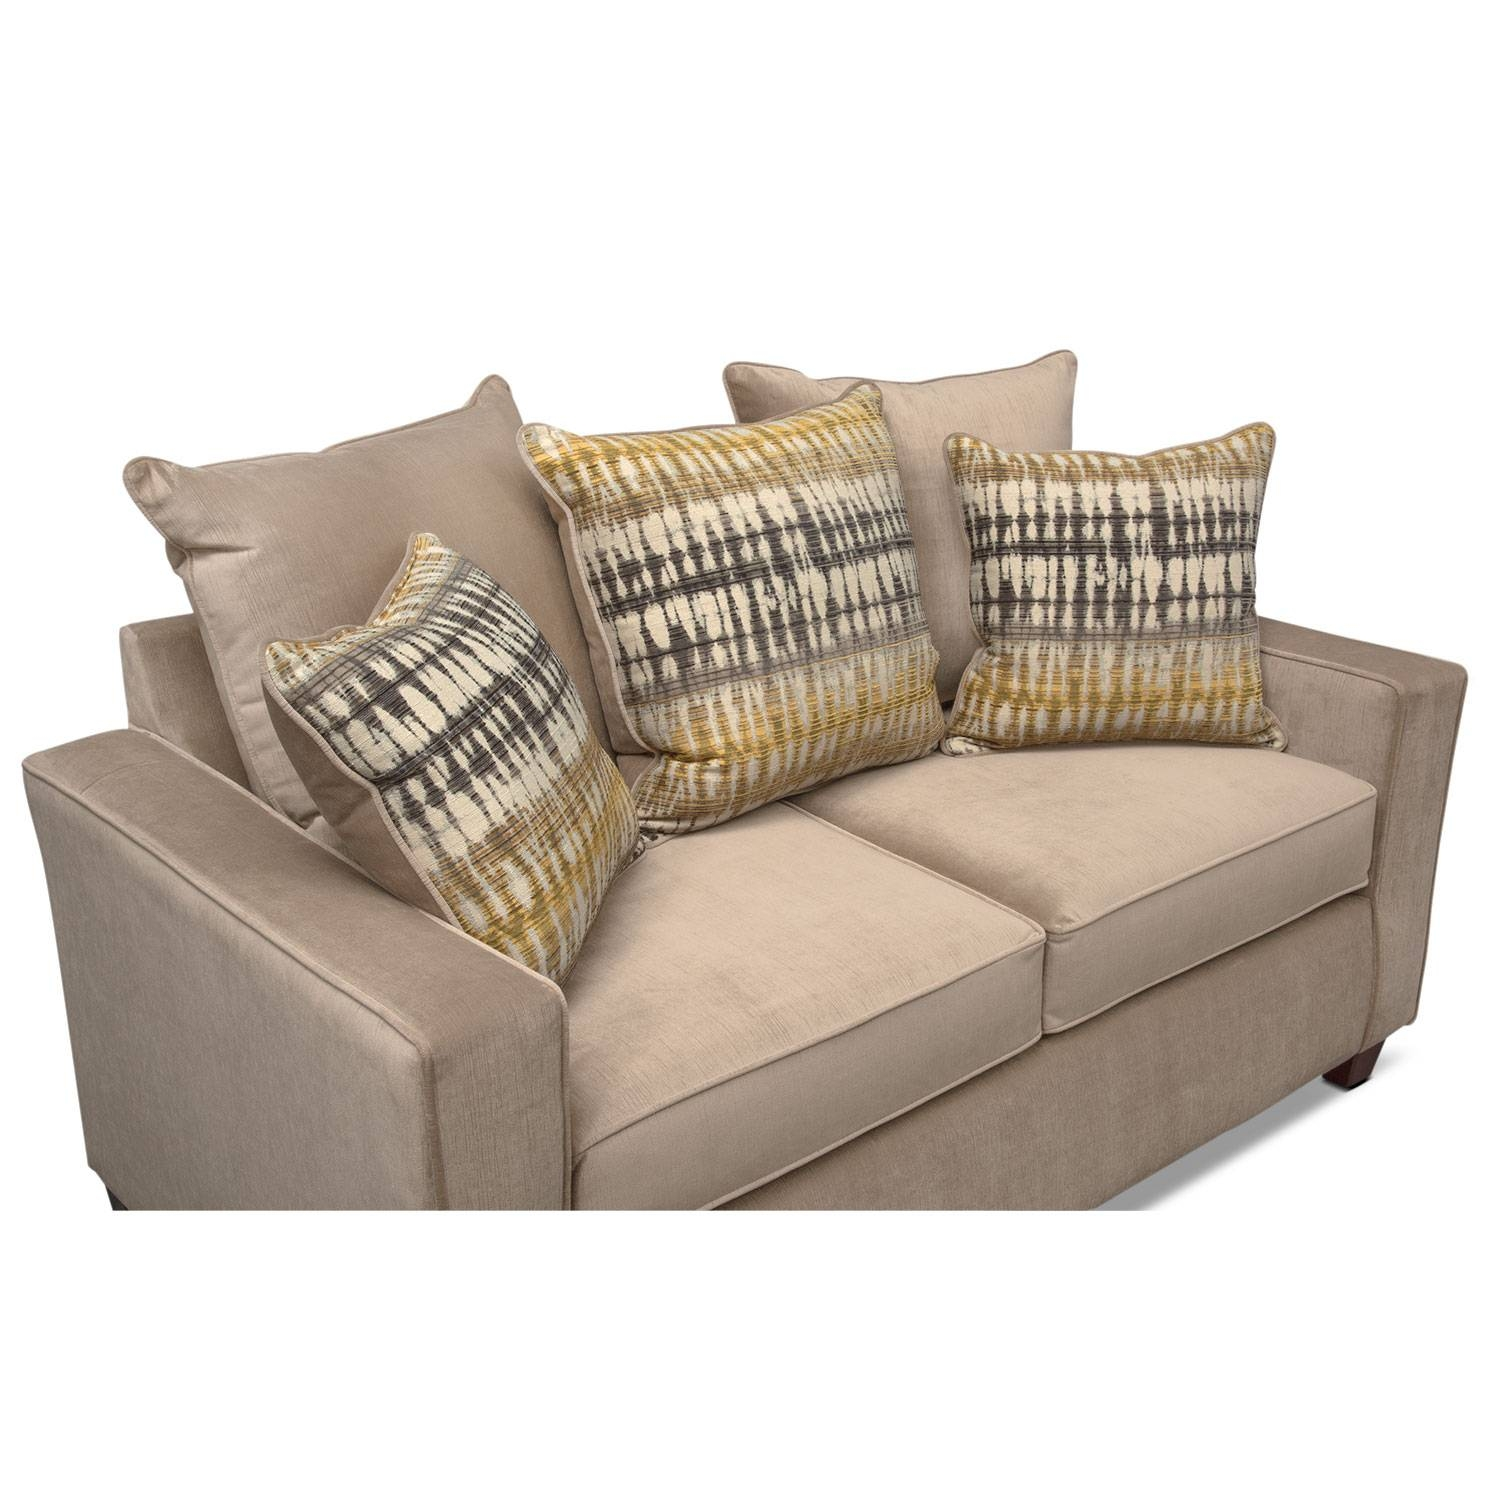 Bryden Sofa, Loveseat And Chair Set - Beige | Value City Furniture for Sofa Loveseat and Chairs (Image 5 of 30)